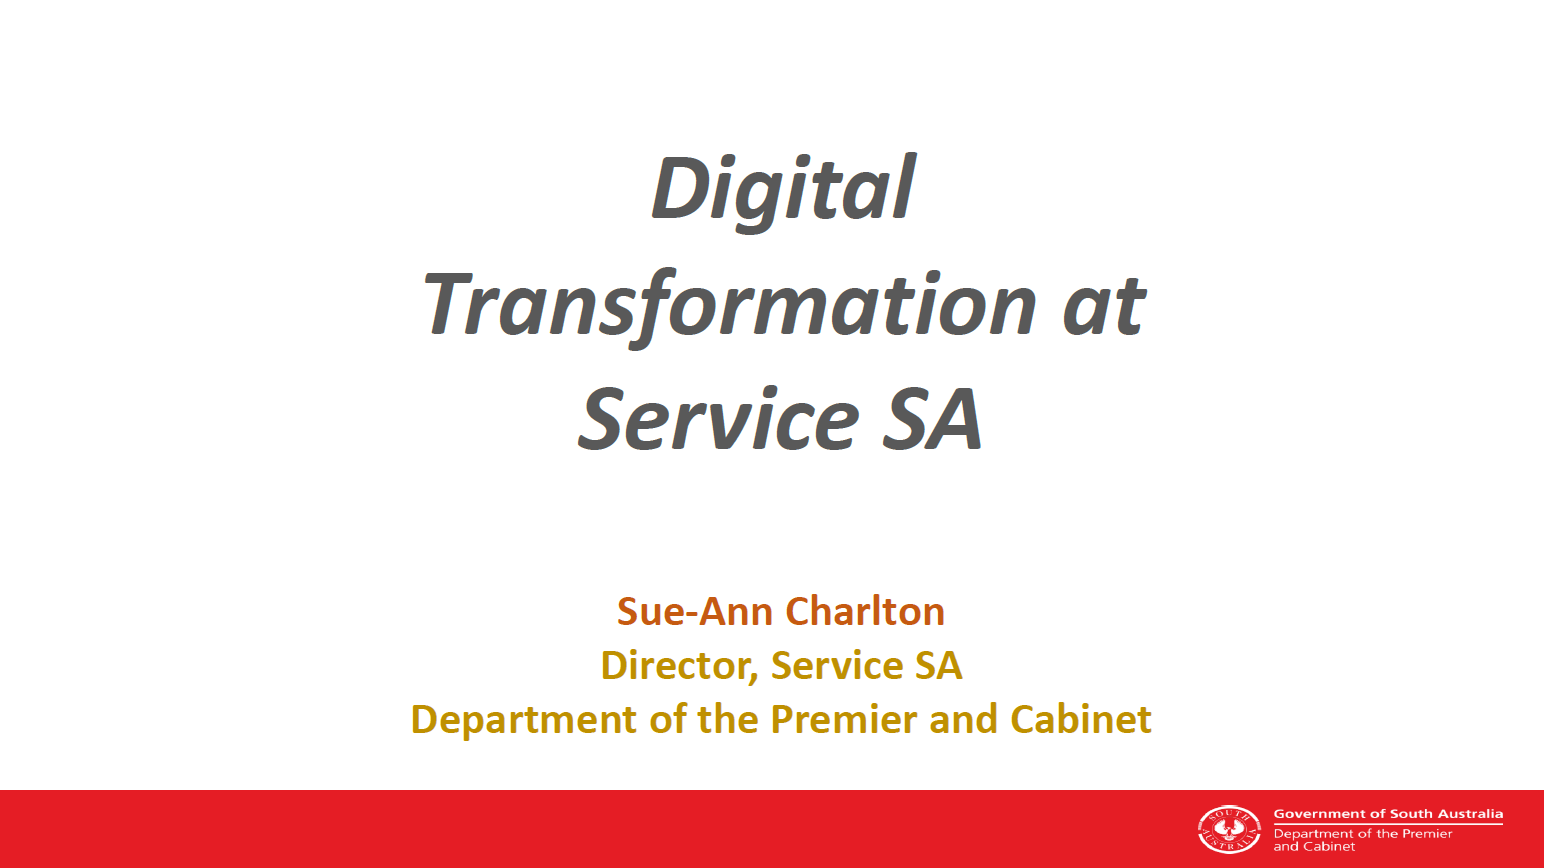 Implementing a Digital Transformation Strategy at Service SA to Reduce Contact Centre Wait times